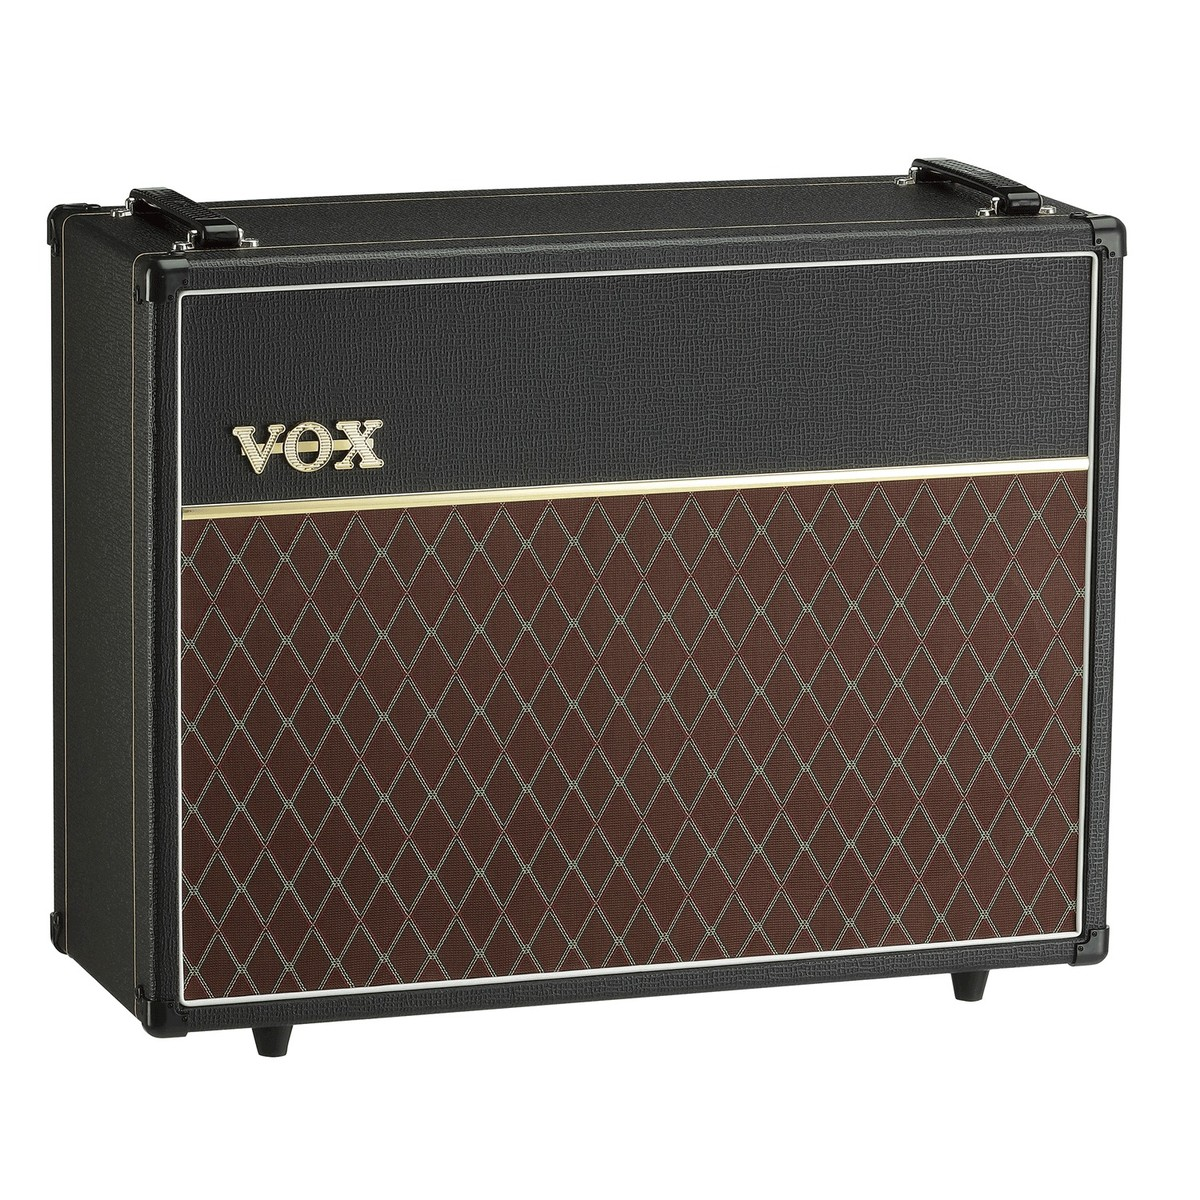 dating vox ac15 #1 i need some help dating a vox amp 07-13-2005, 10:55 pm hey guys, sorry to post off topic, but i think this thread will sink in a heartbeat on the amp forum anyways, im trying to get a vox amp and found a.